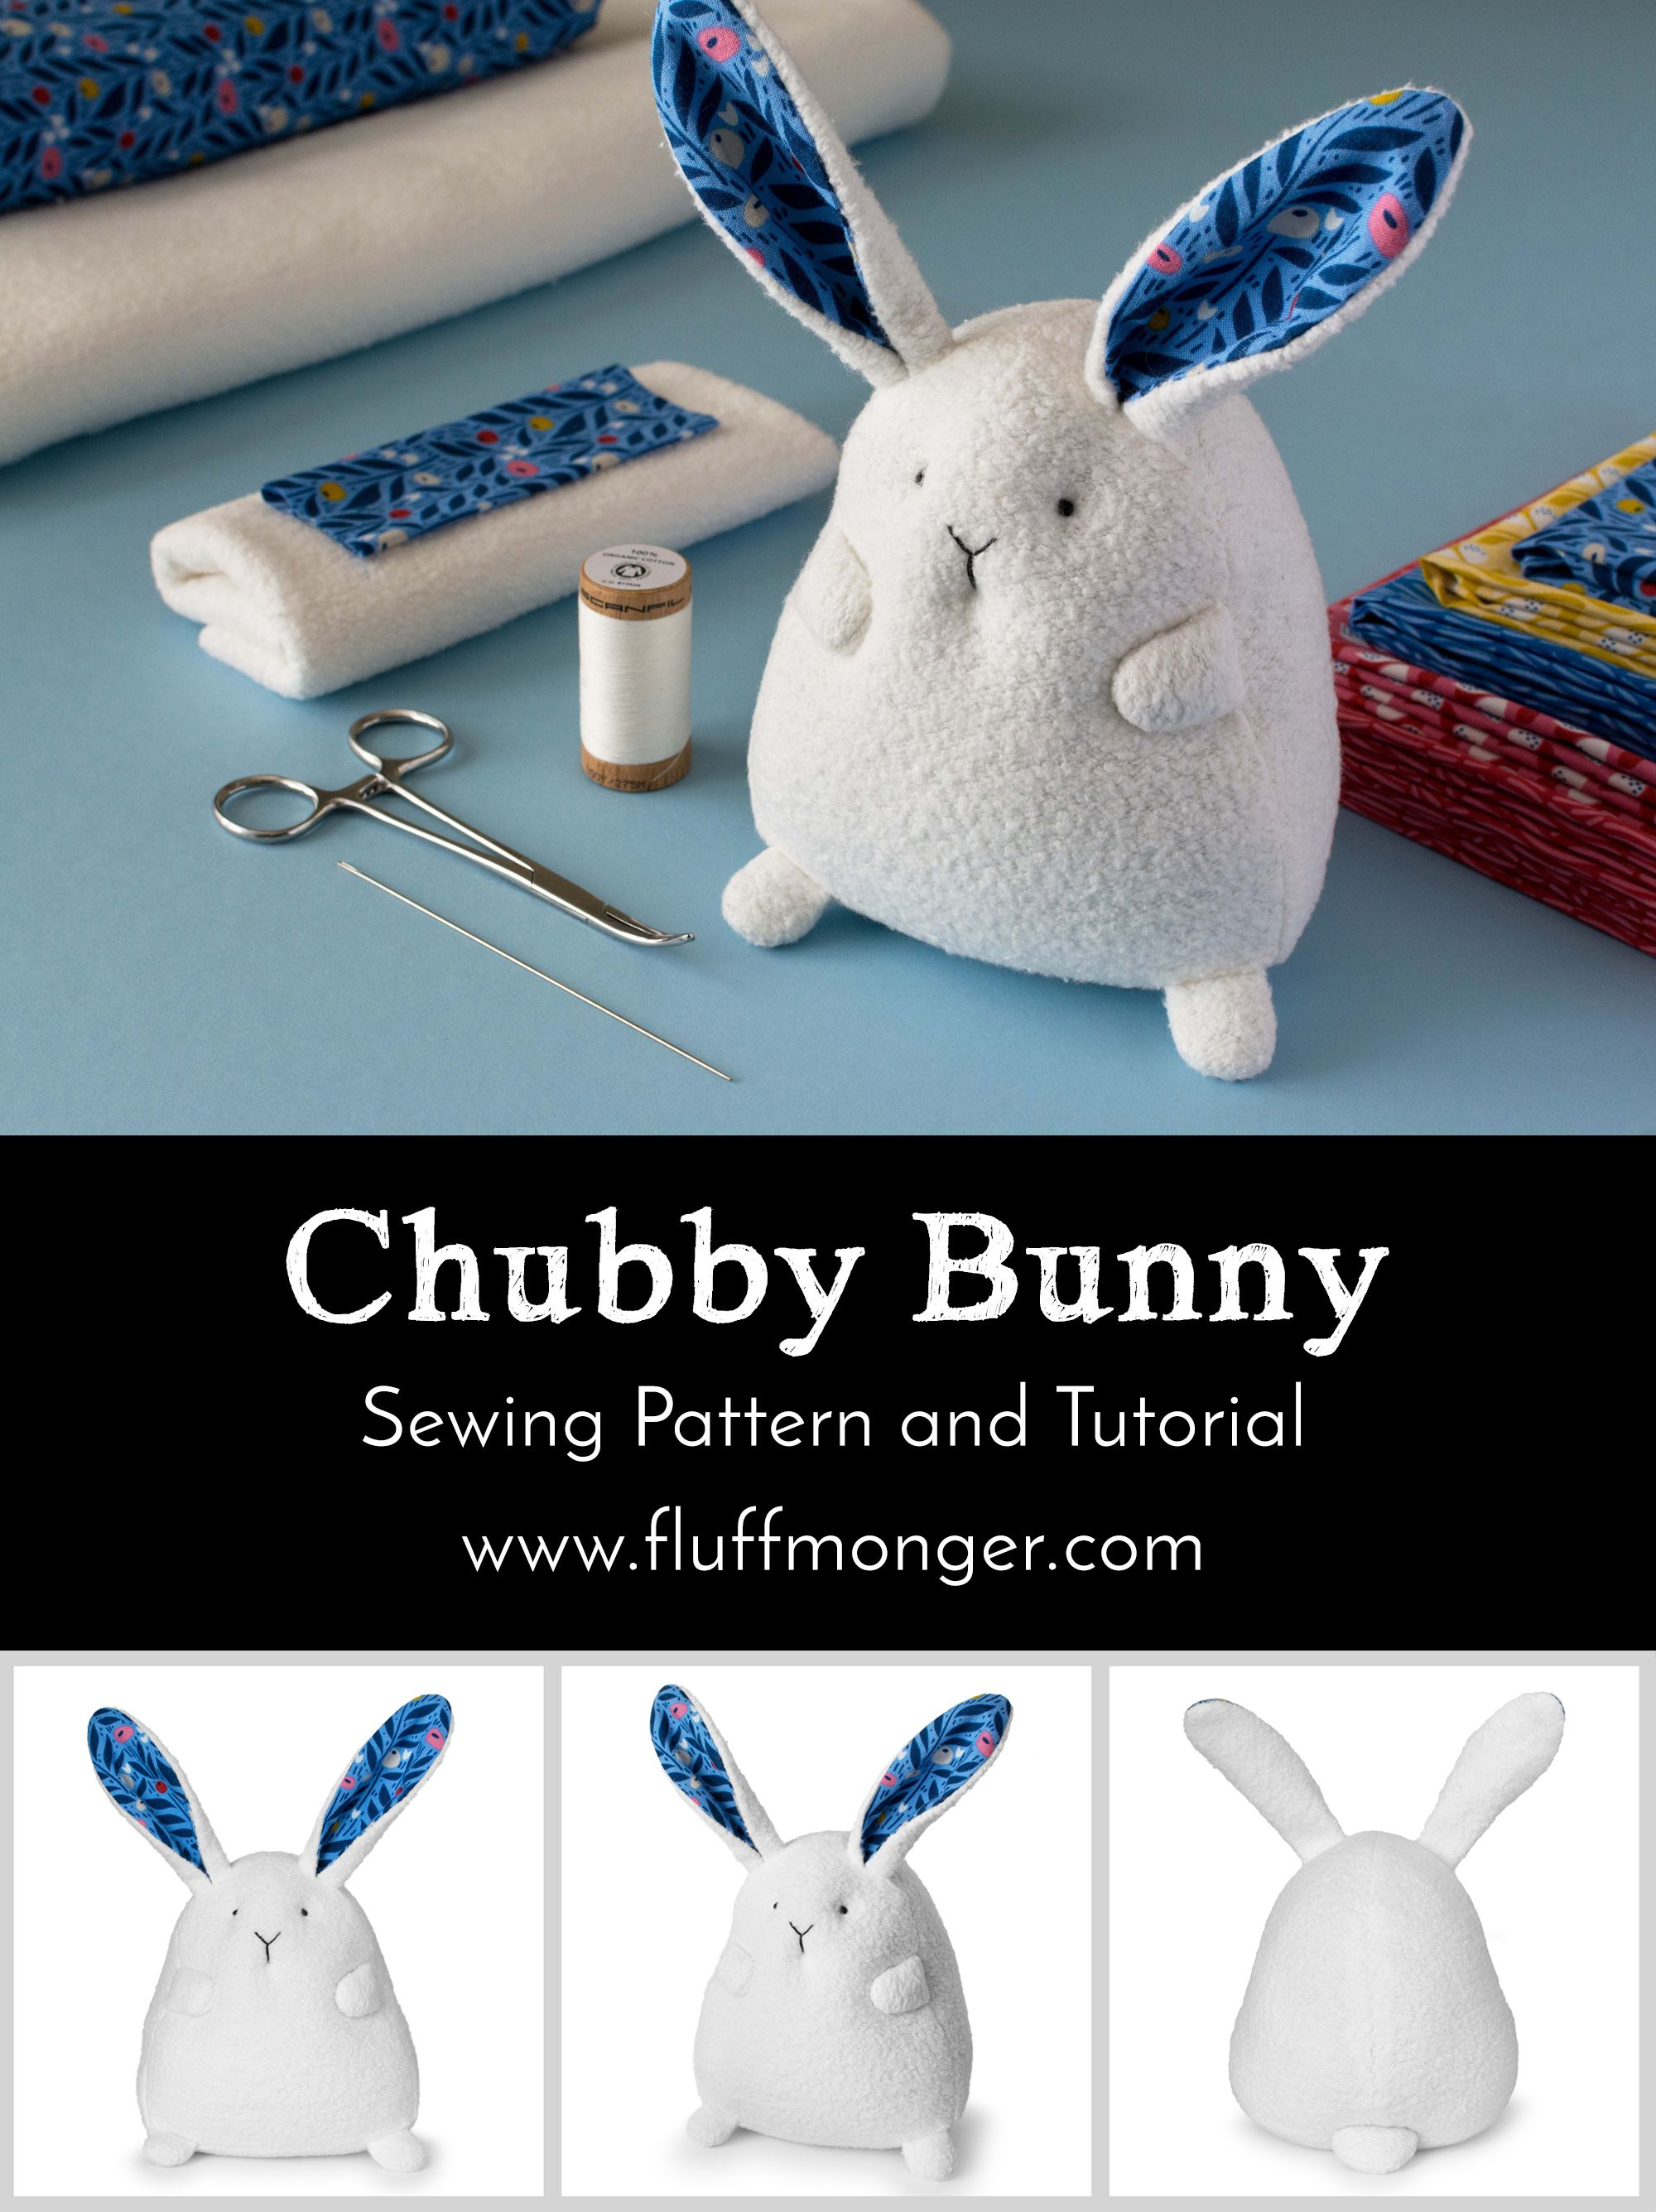 Chubby Bunny Sewing Pattern and Kits #craft